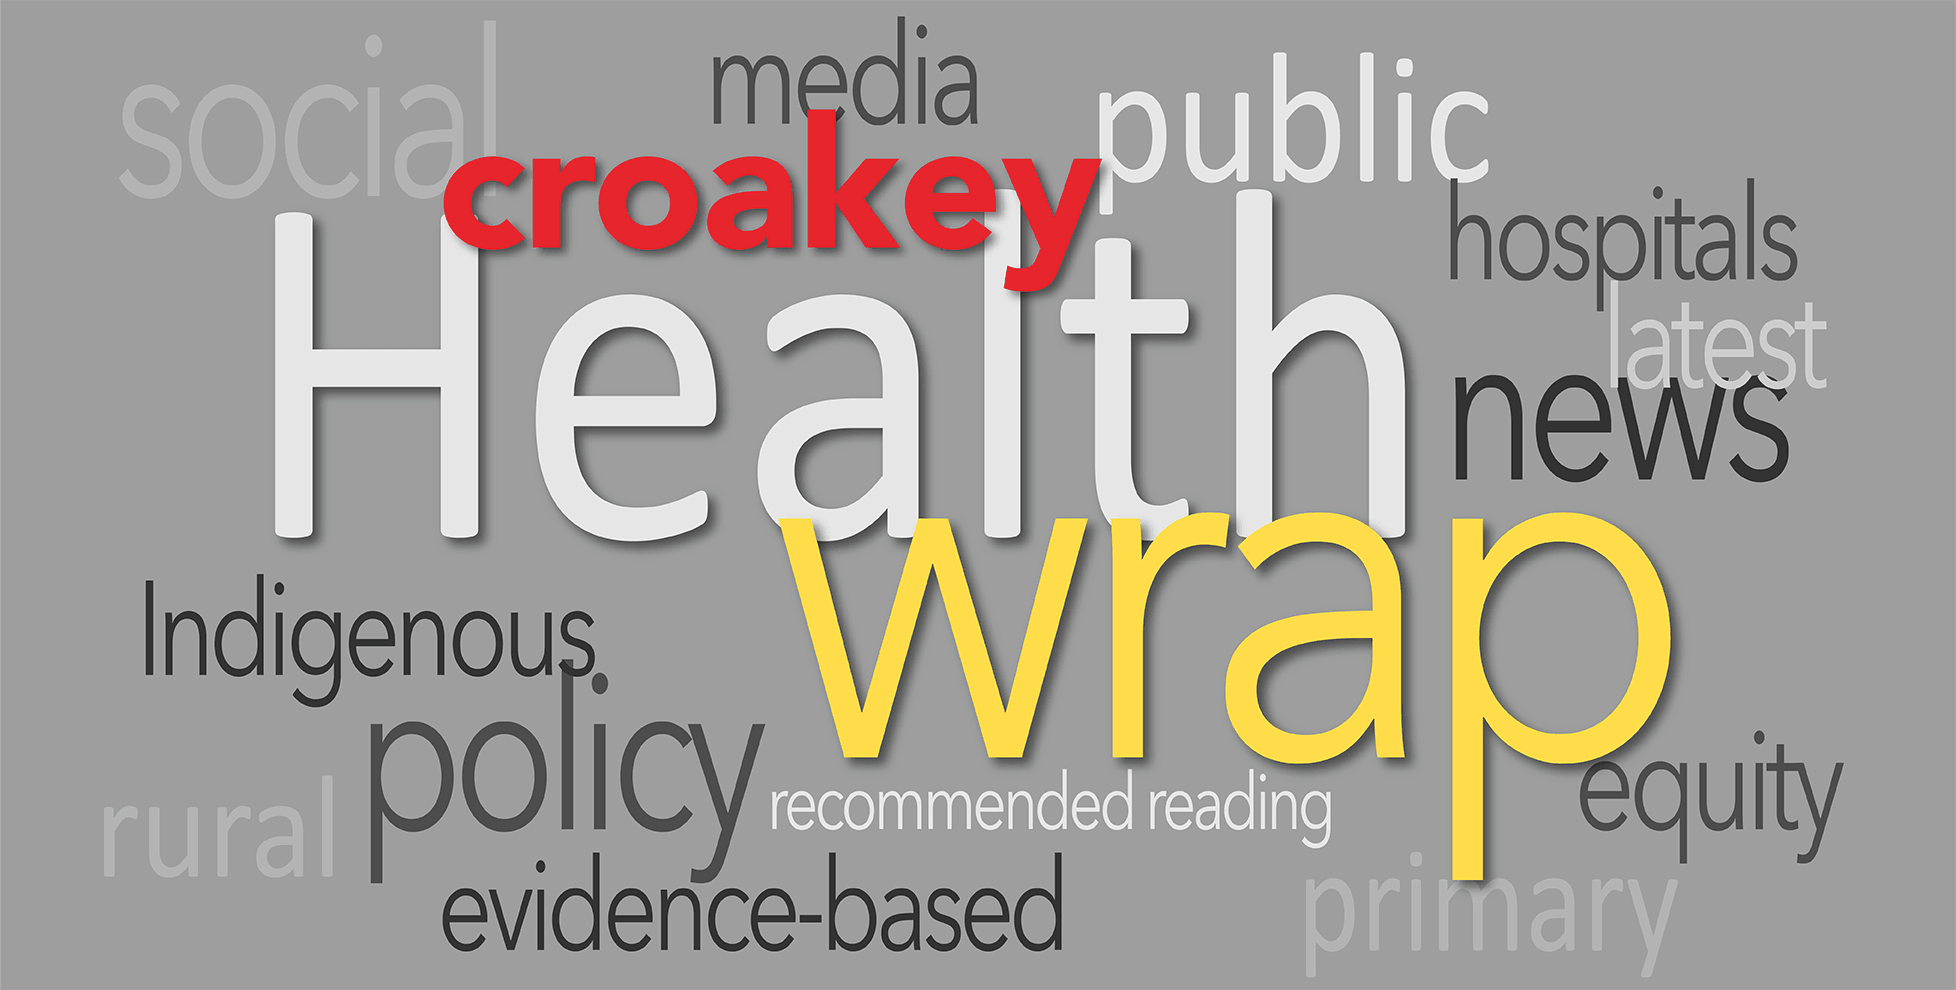 HealthWrap: Health care homes, hot policy topics - and the latest public health news